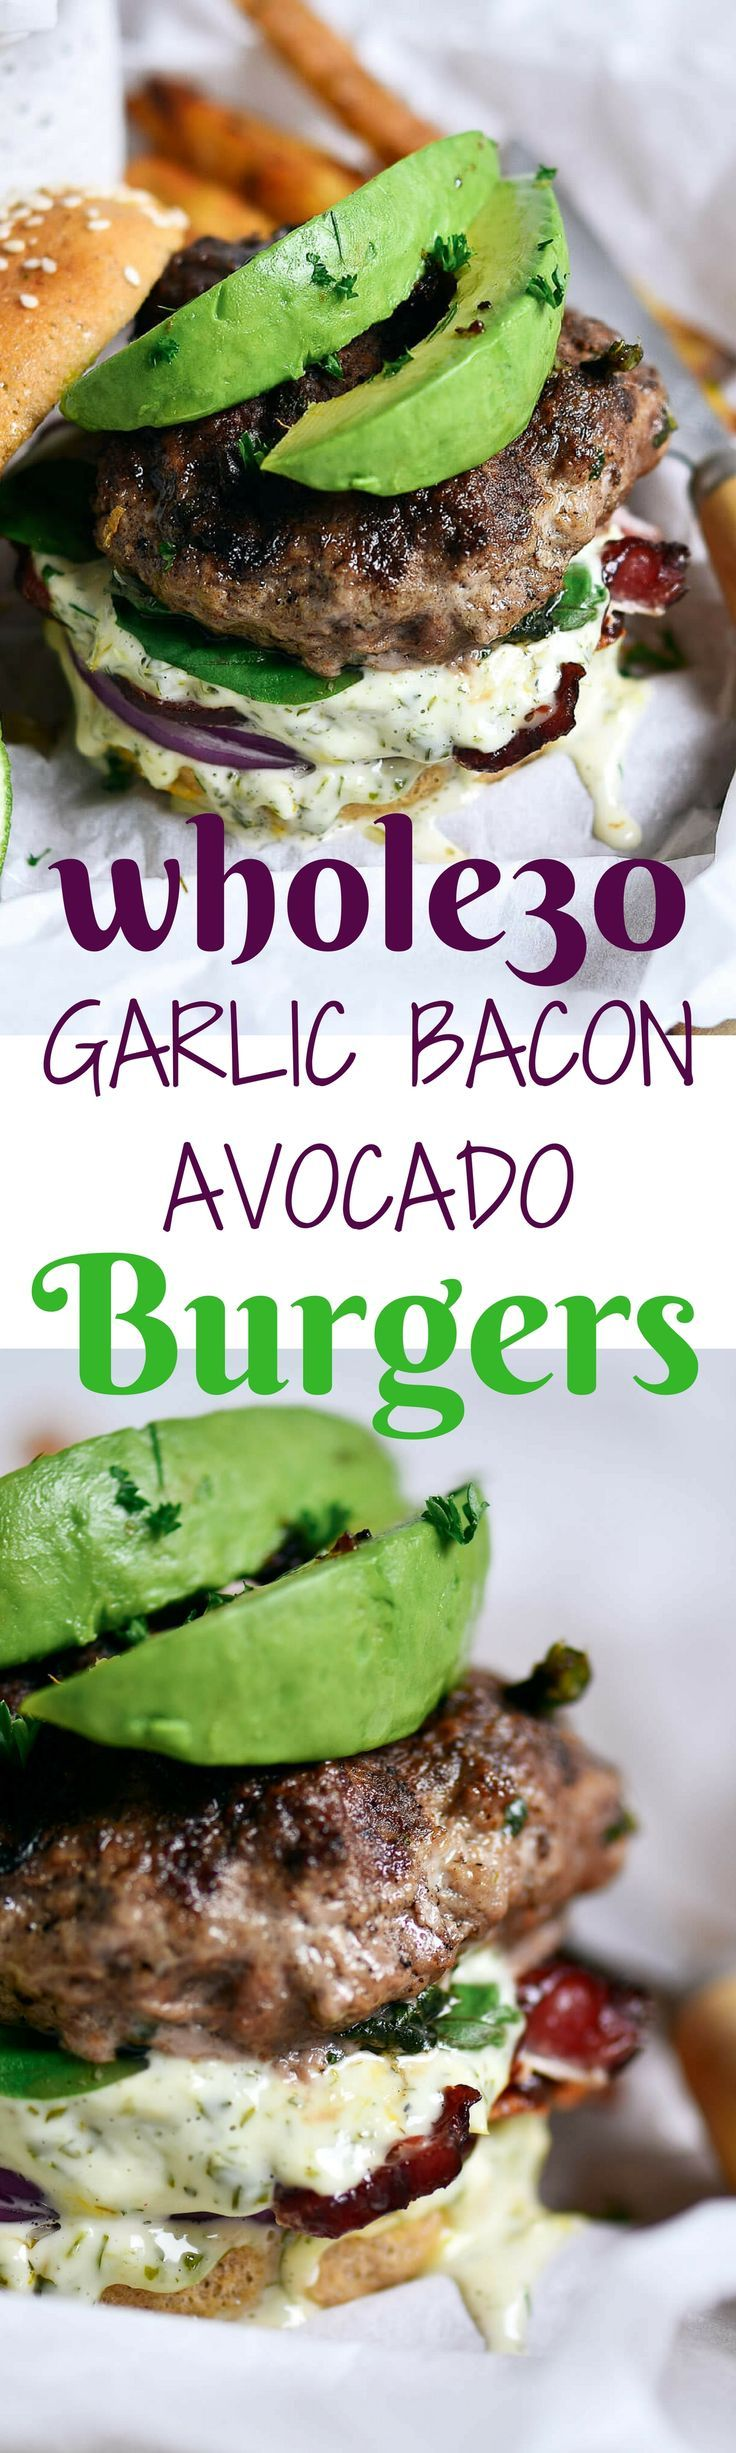 Garlic Bacon Avocado Burger (Whole 30/Paleo)